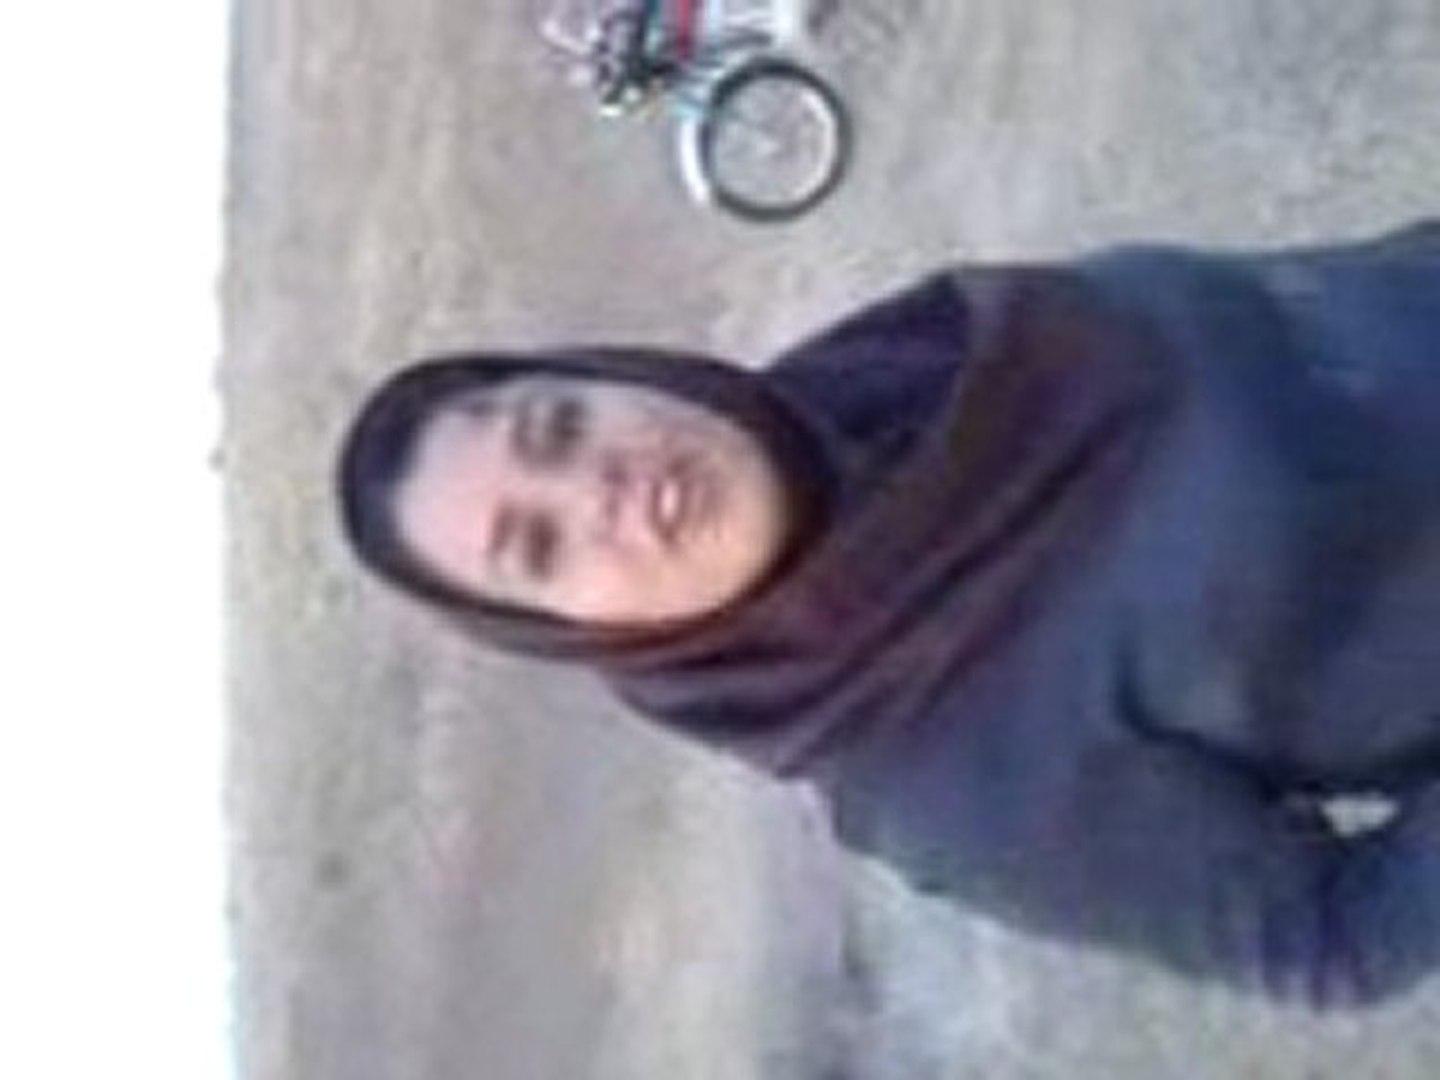 Sexy video in iran